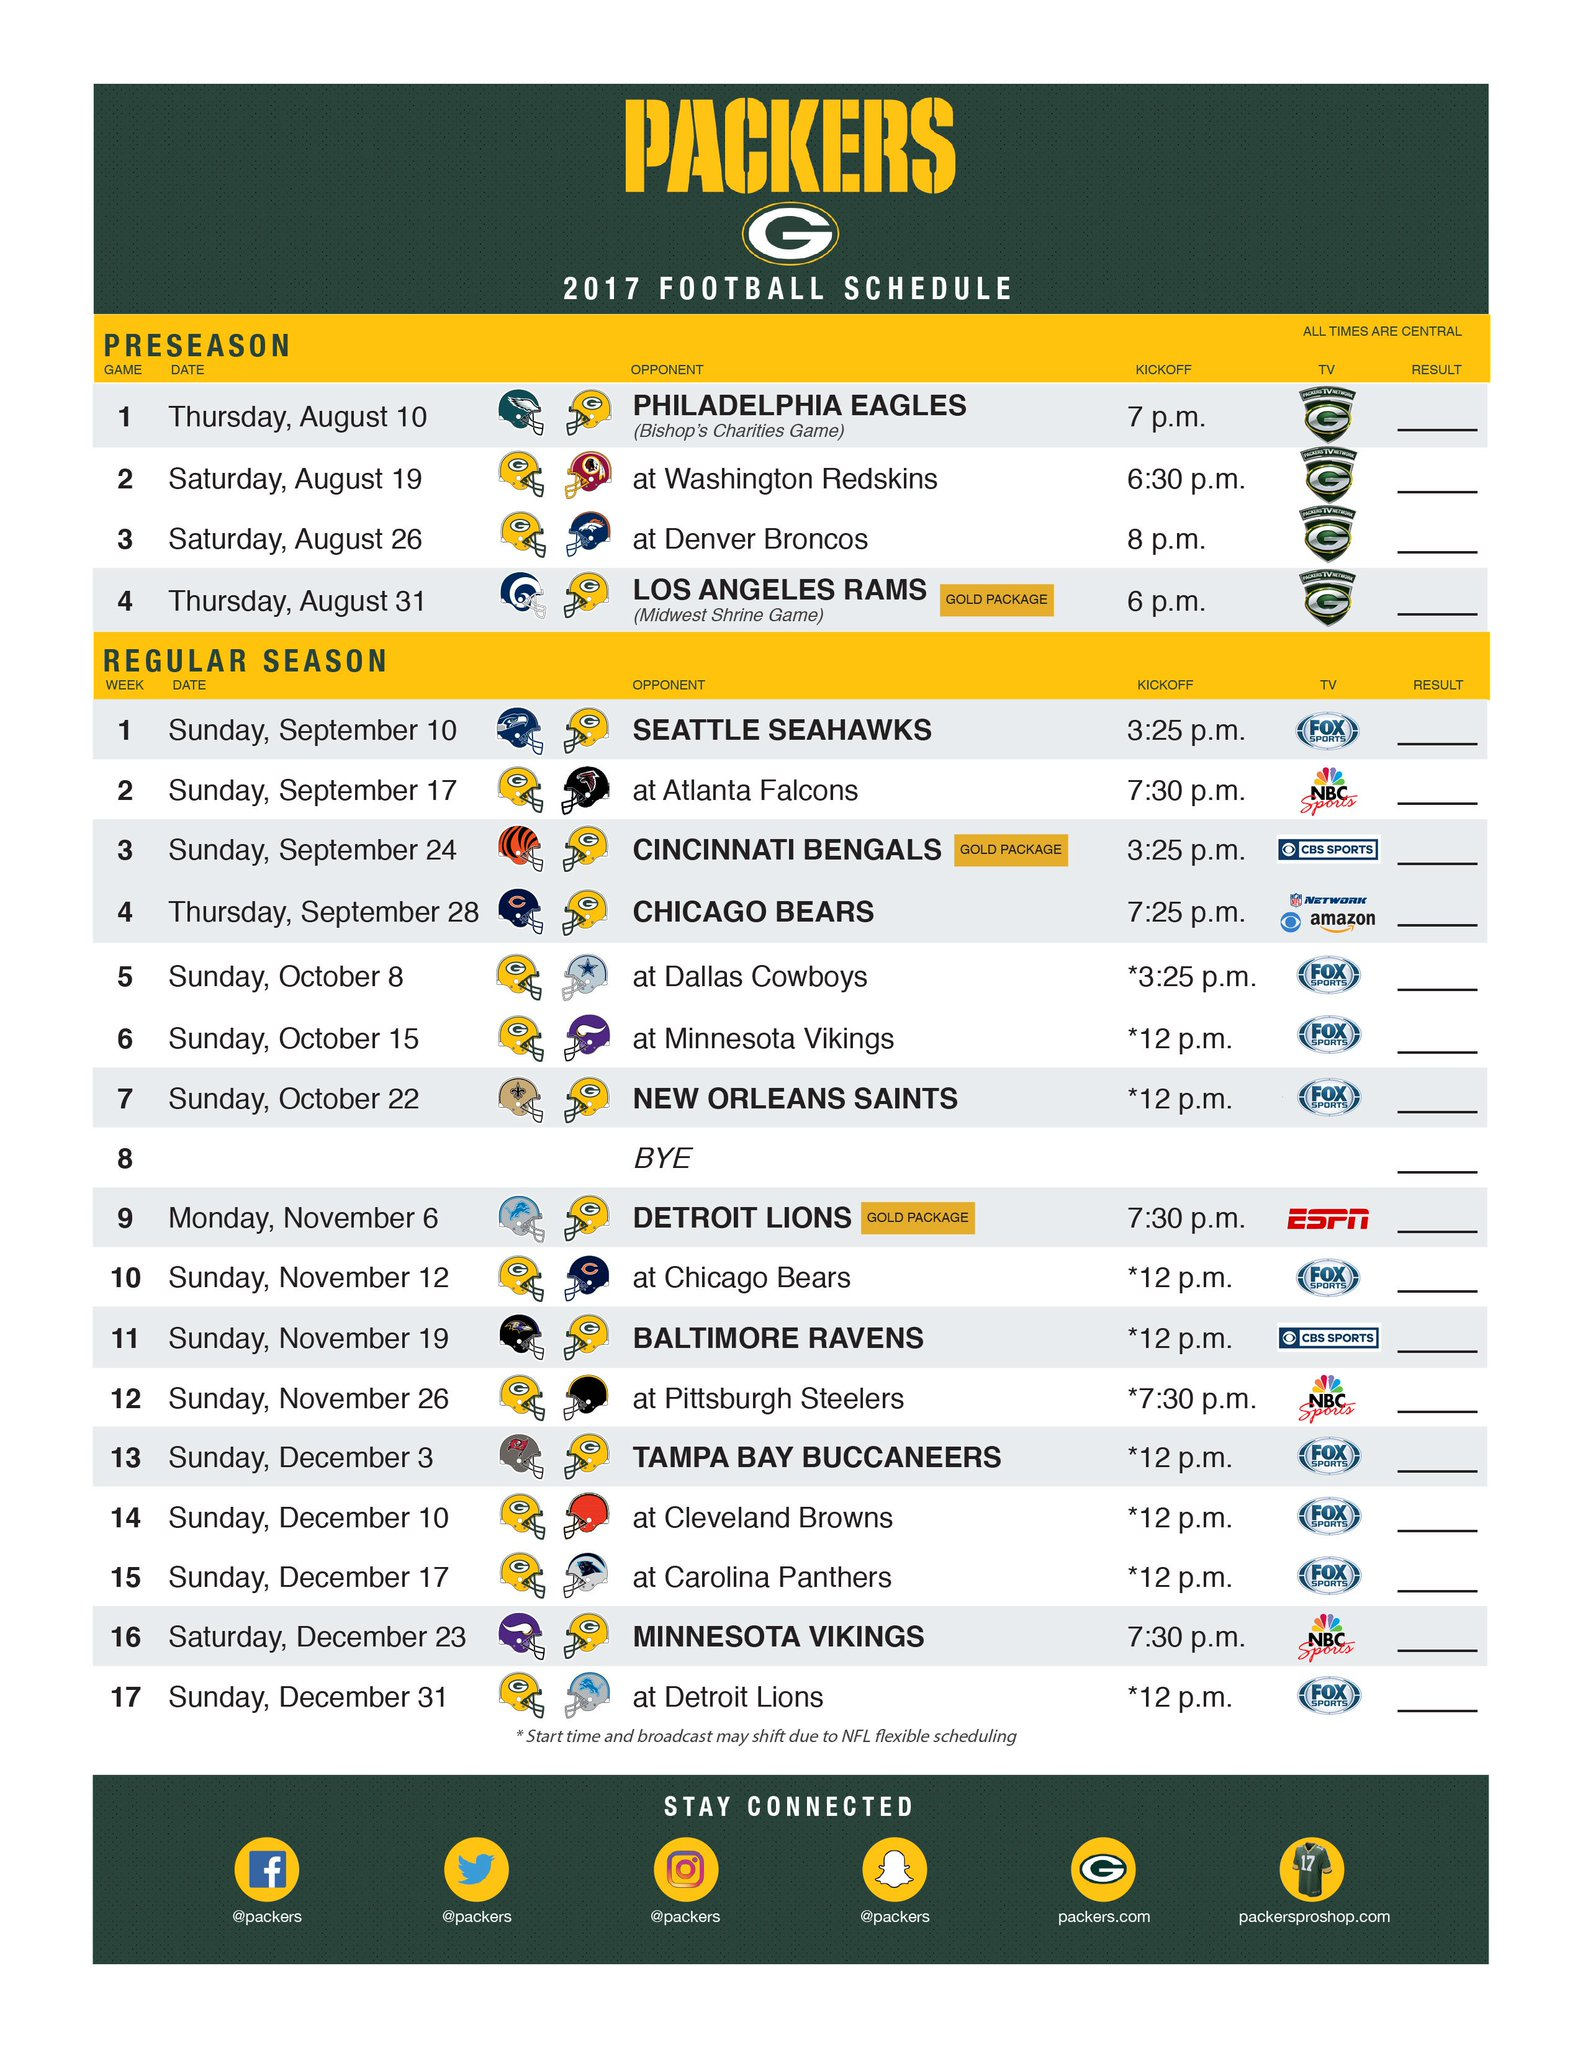 Print your 2017 #Packers schedule!   ��: https://t.co/11LbDm9kMY   #GoPackGo https://t.co/08fkeBD64k